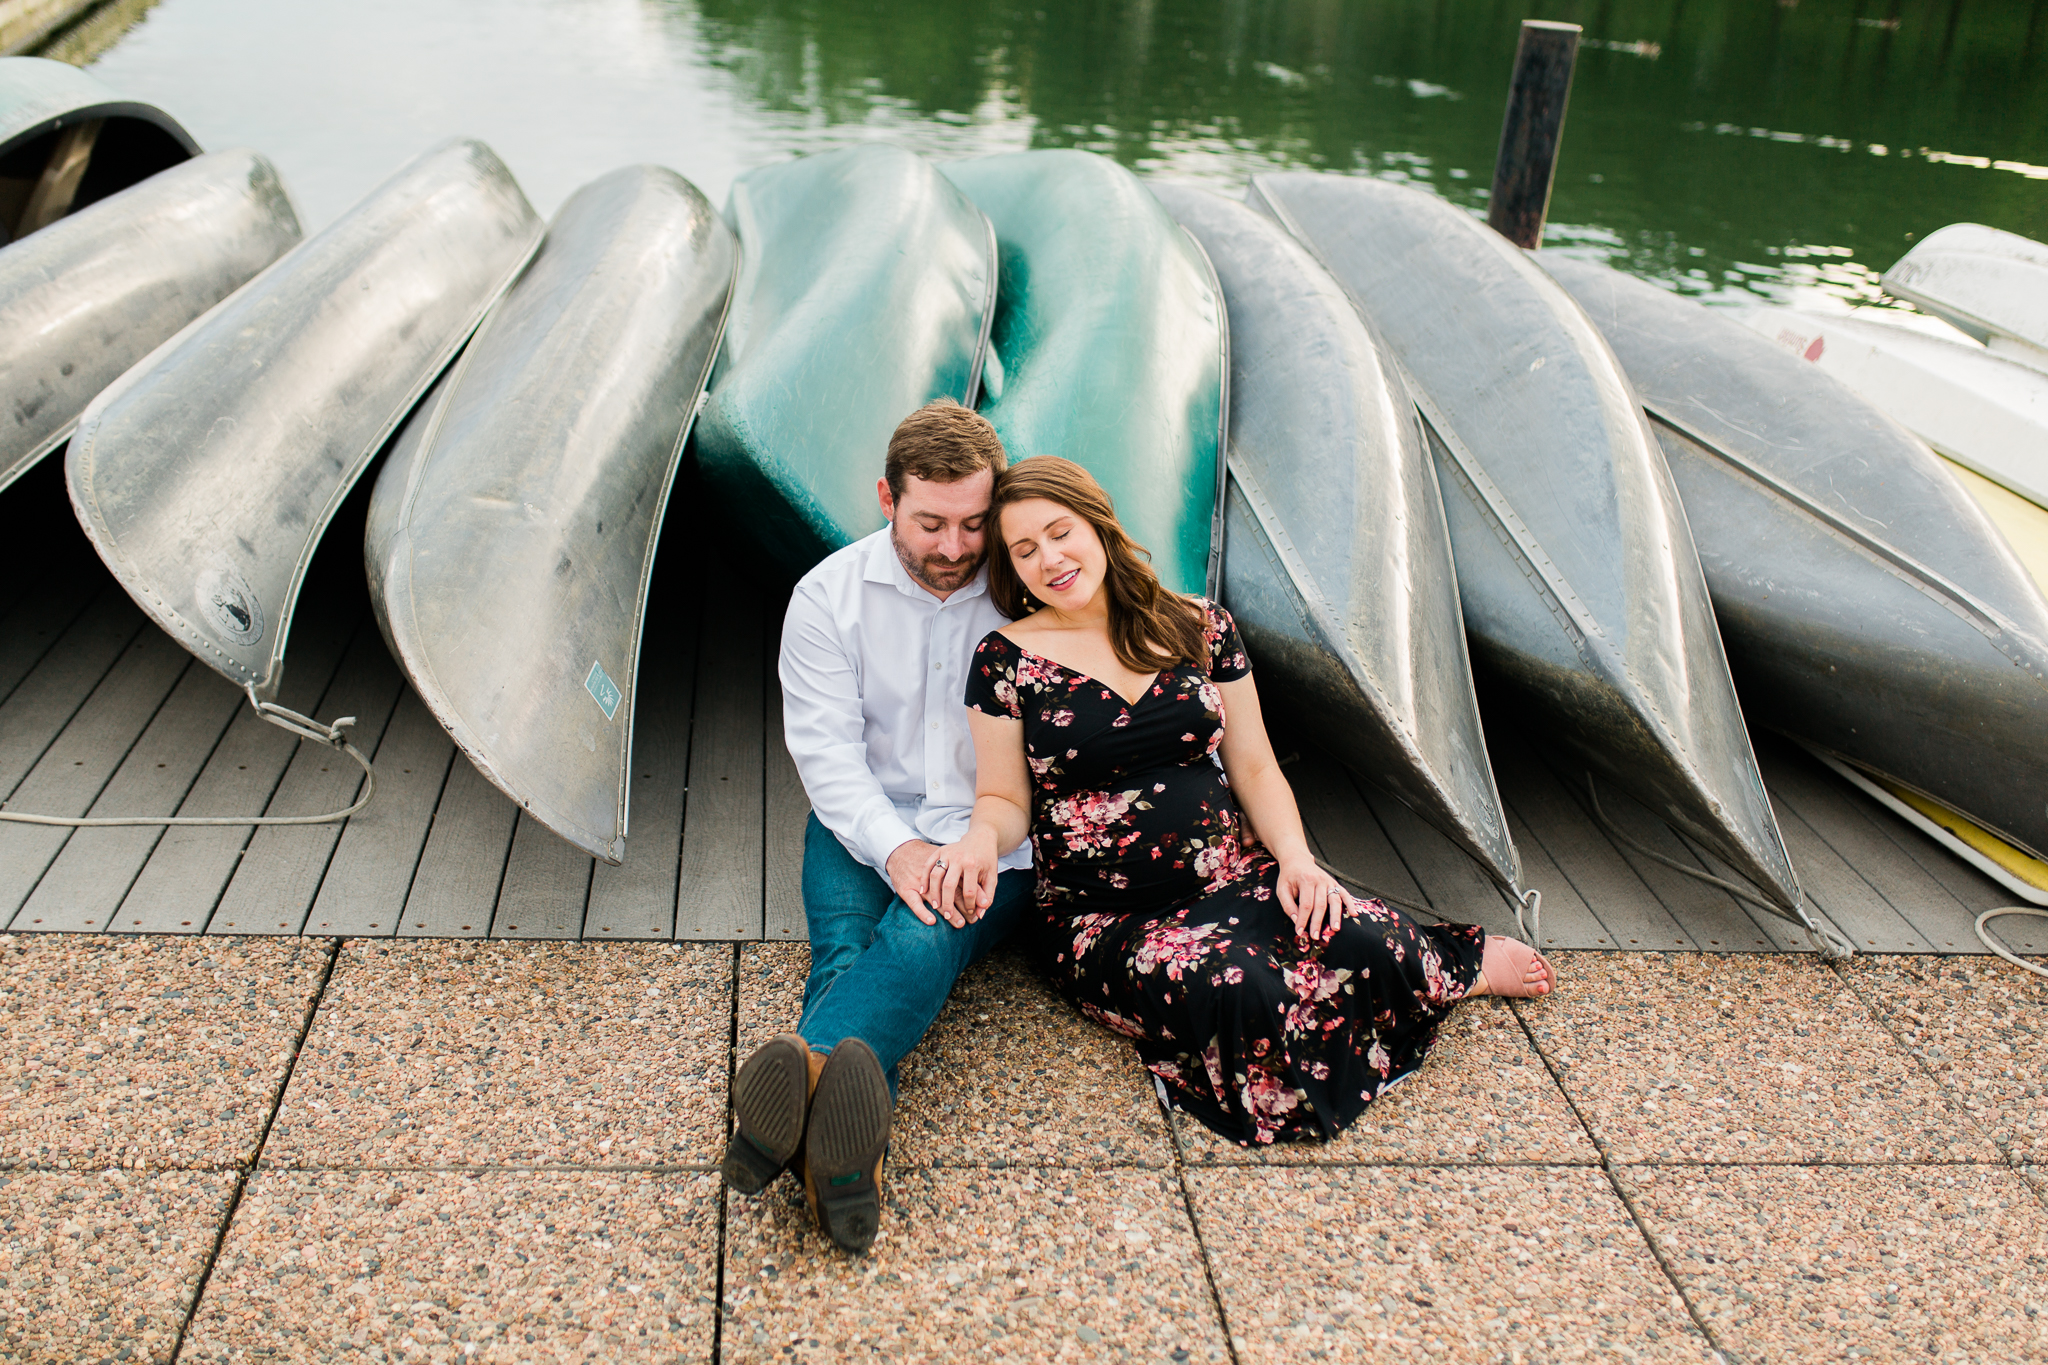 Pregant couple sit by a row of canoes, Shawnee Kansas and Johnson County maternity photographer, Rebecca Clair Photography